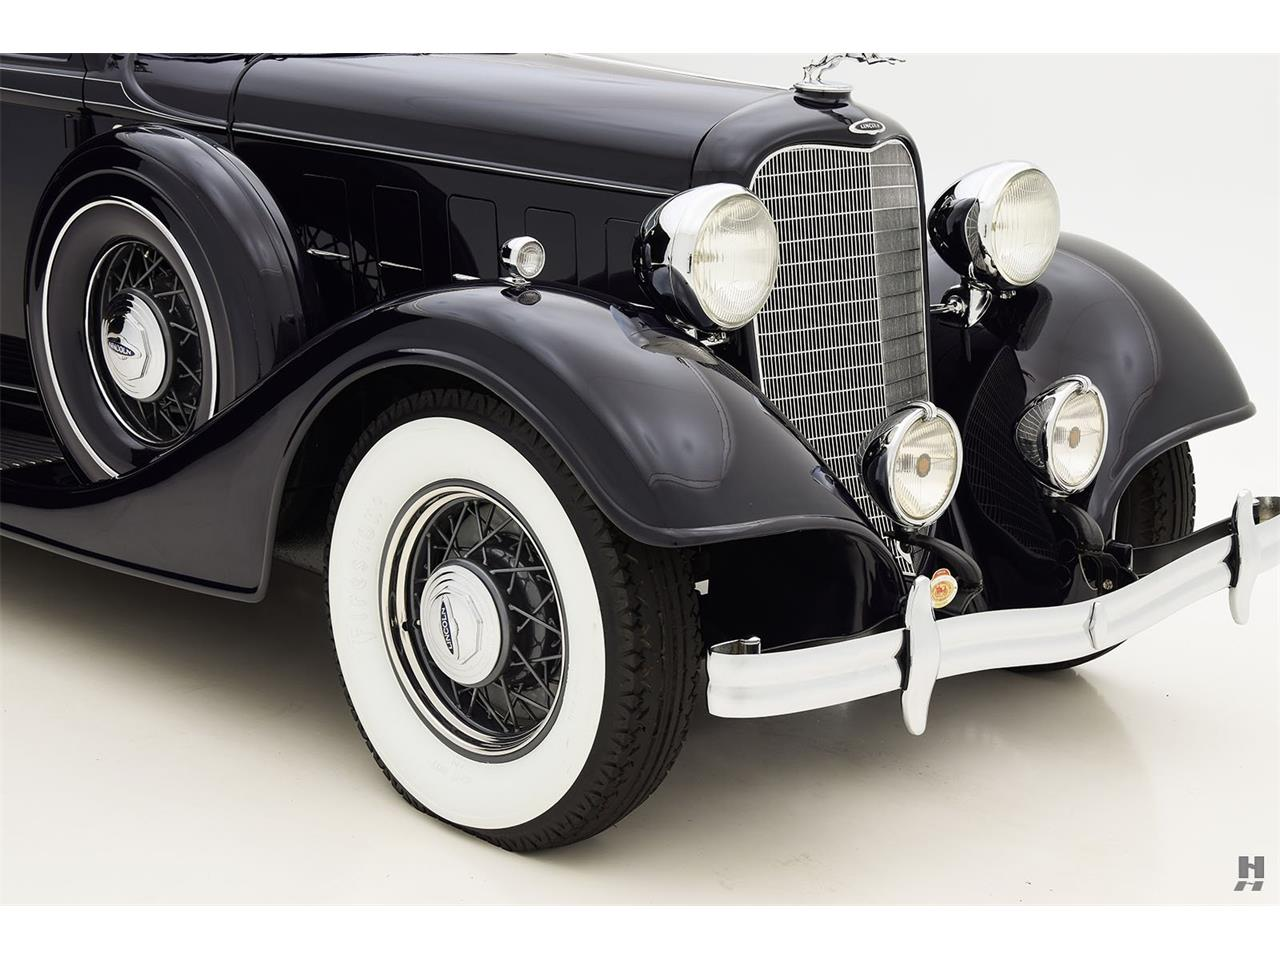 Large Picture of Classic '34 Lincoln Antique located in Missouri Offered by Hyman Ltd. Classic Cars - LBT2